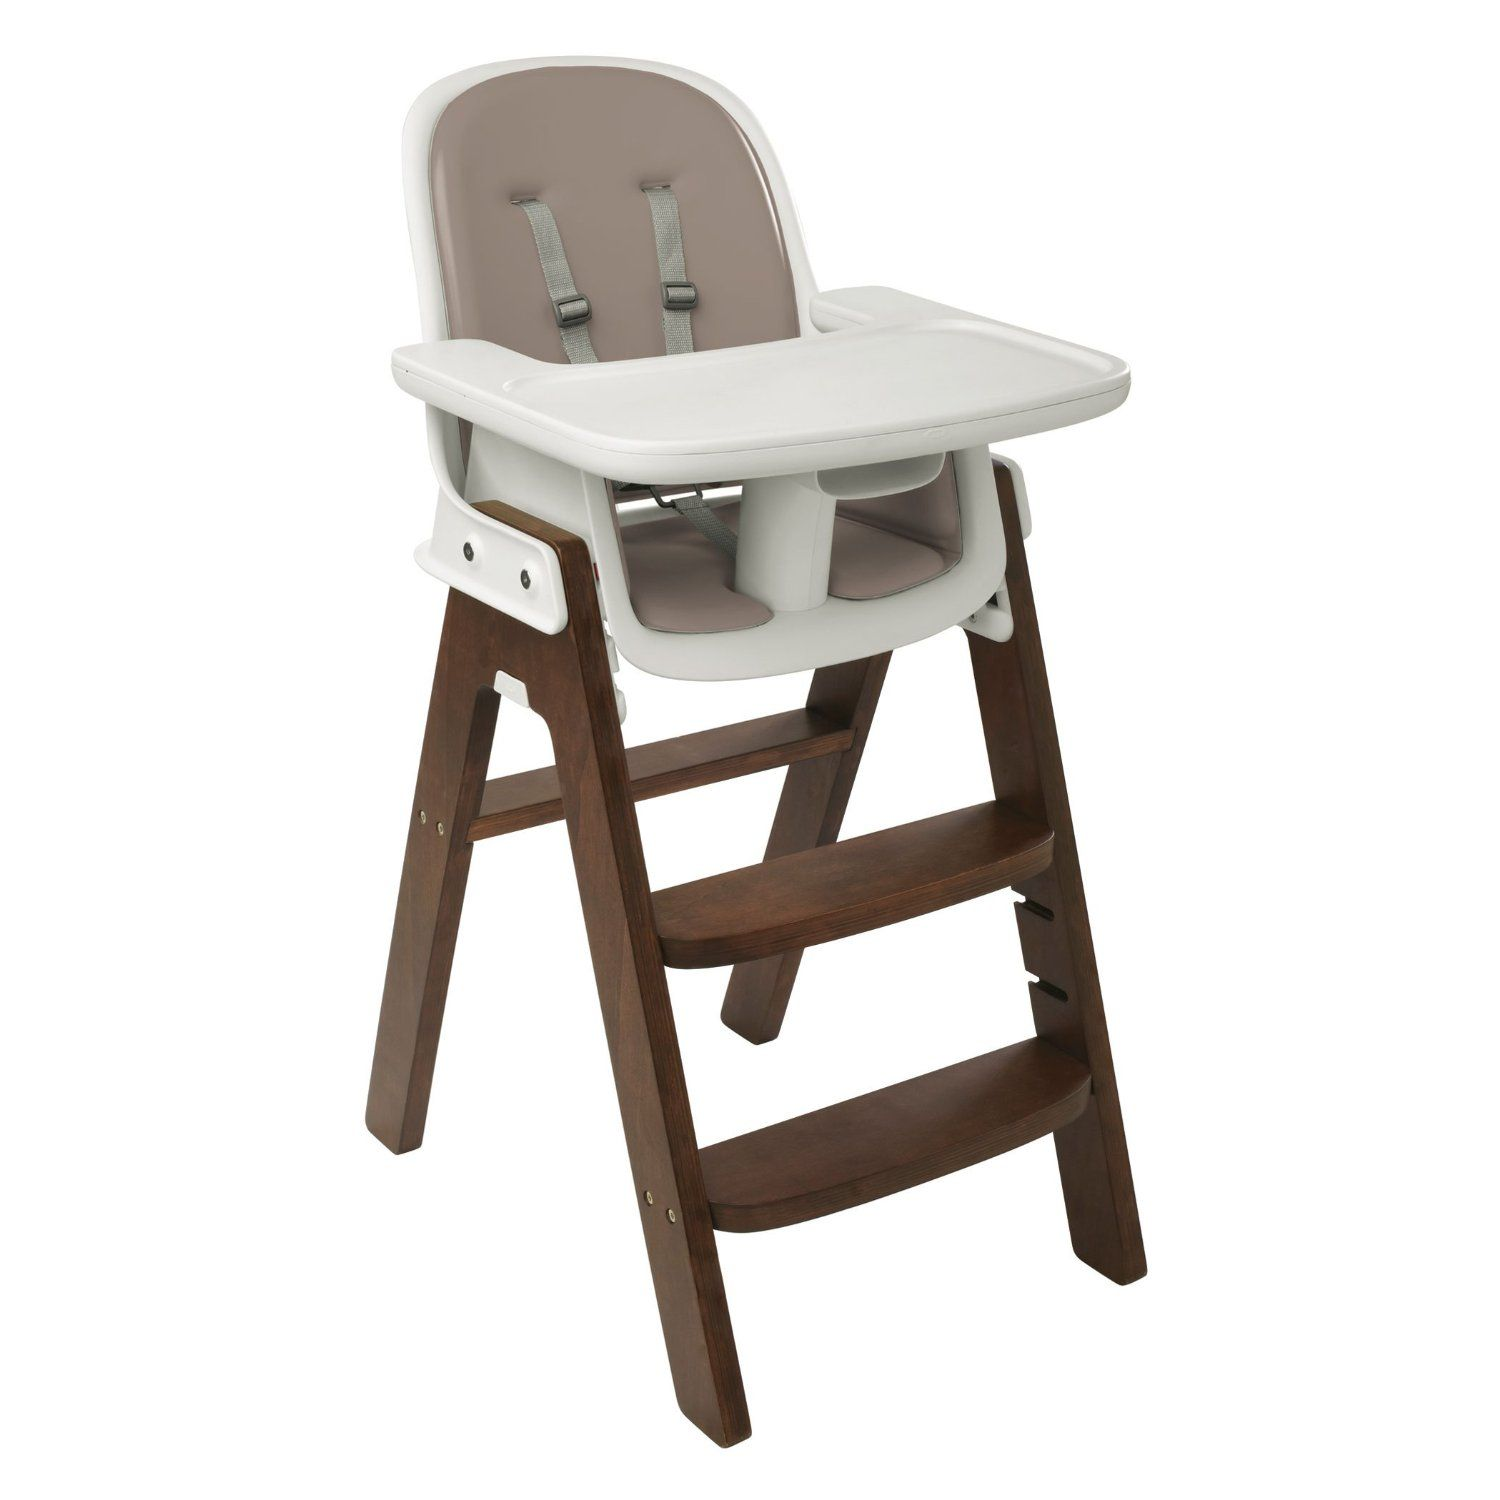 Best Highchair Ever Oxo Tot Sprout Chair In Taupe Walnut